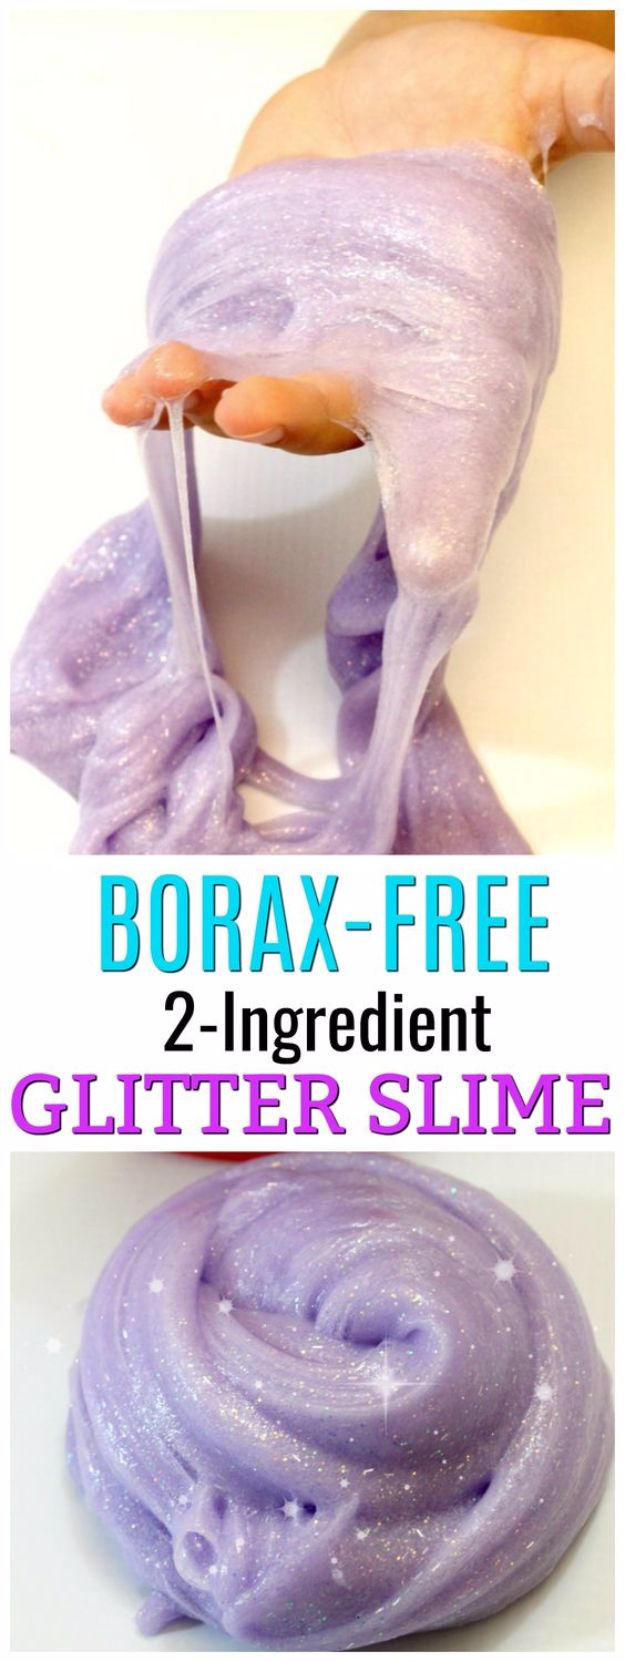 Best DIY Slime Recipes - Easy Glitter Slime With No Borax - Cool and Easy Slime Recipe and Tutorials - Ideas Without Glue, Without Borax, For Kids, With Liquid Starch, Cornstarch and Laundry Detergent - How to Make Slime at Home - Fun Crafts and DIY Projects for Teens, Kids, Teenagers and Teens - Galaxy and Glitter Slime, Edible Slime, Rainbow Colored Slime, Shaving Cream recipes and more fun crafts and slimes http://diyprojectsforteens.com/diy-slime-recipe-ideas